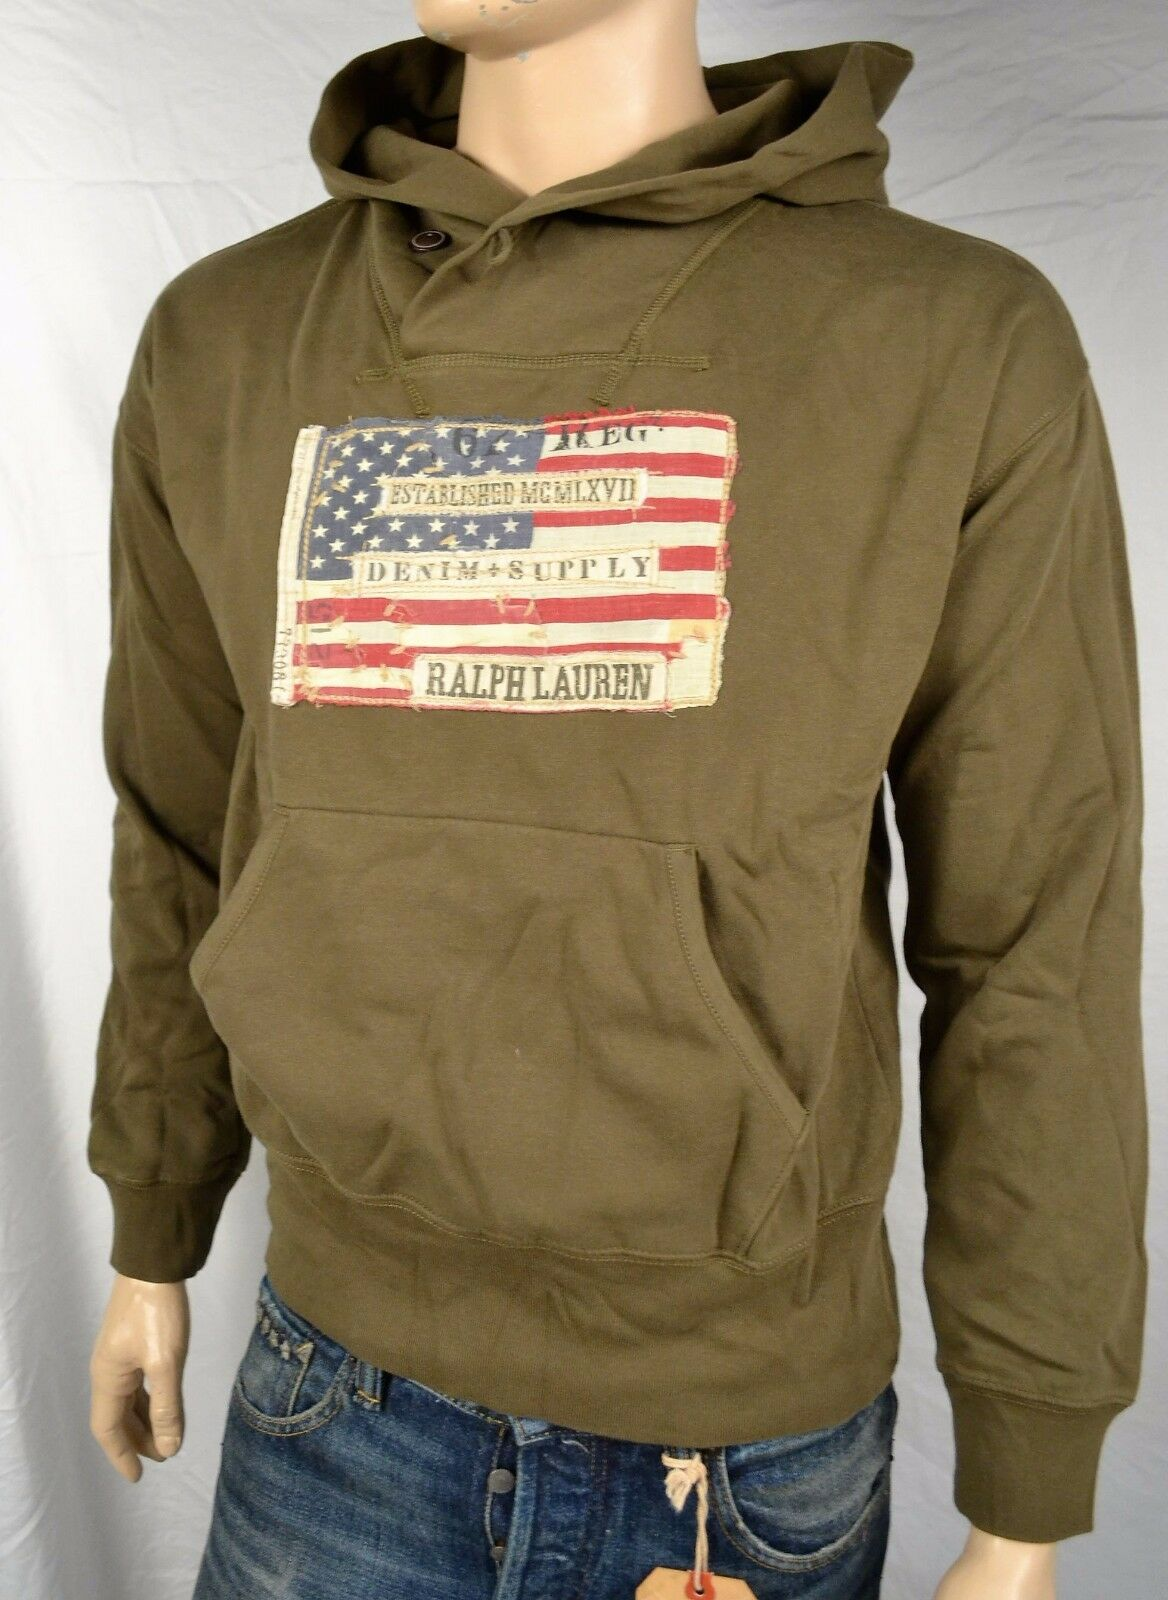 DENIM & SUPPLY RALPH LAUREN KHAKI Grün DISTRESSED USA PATRIOTIC HOODIE SWEATSHI